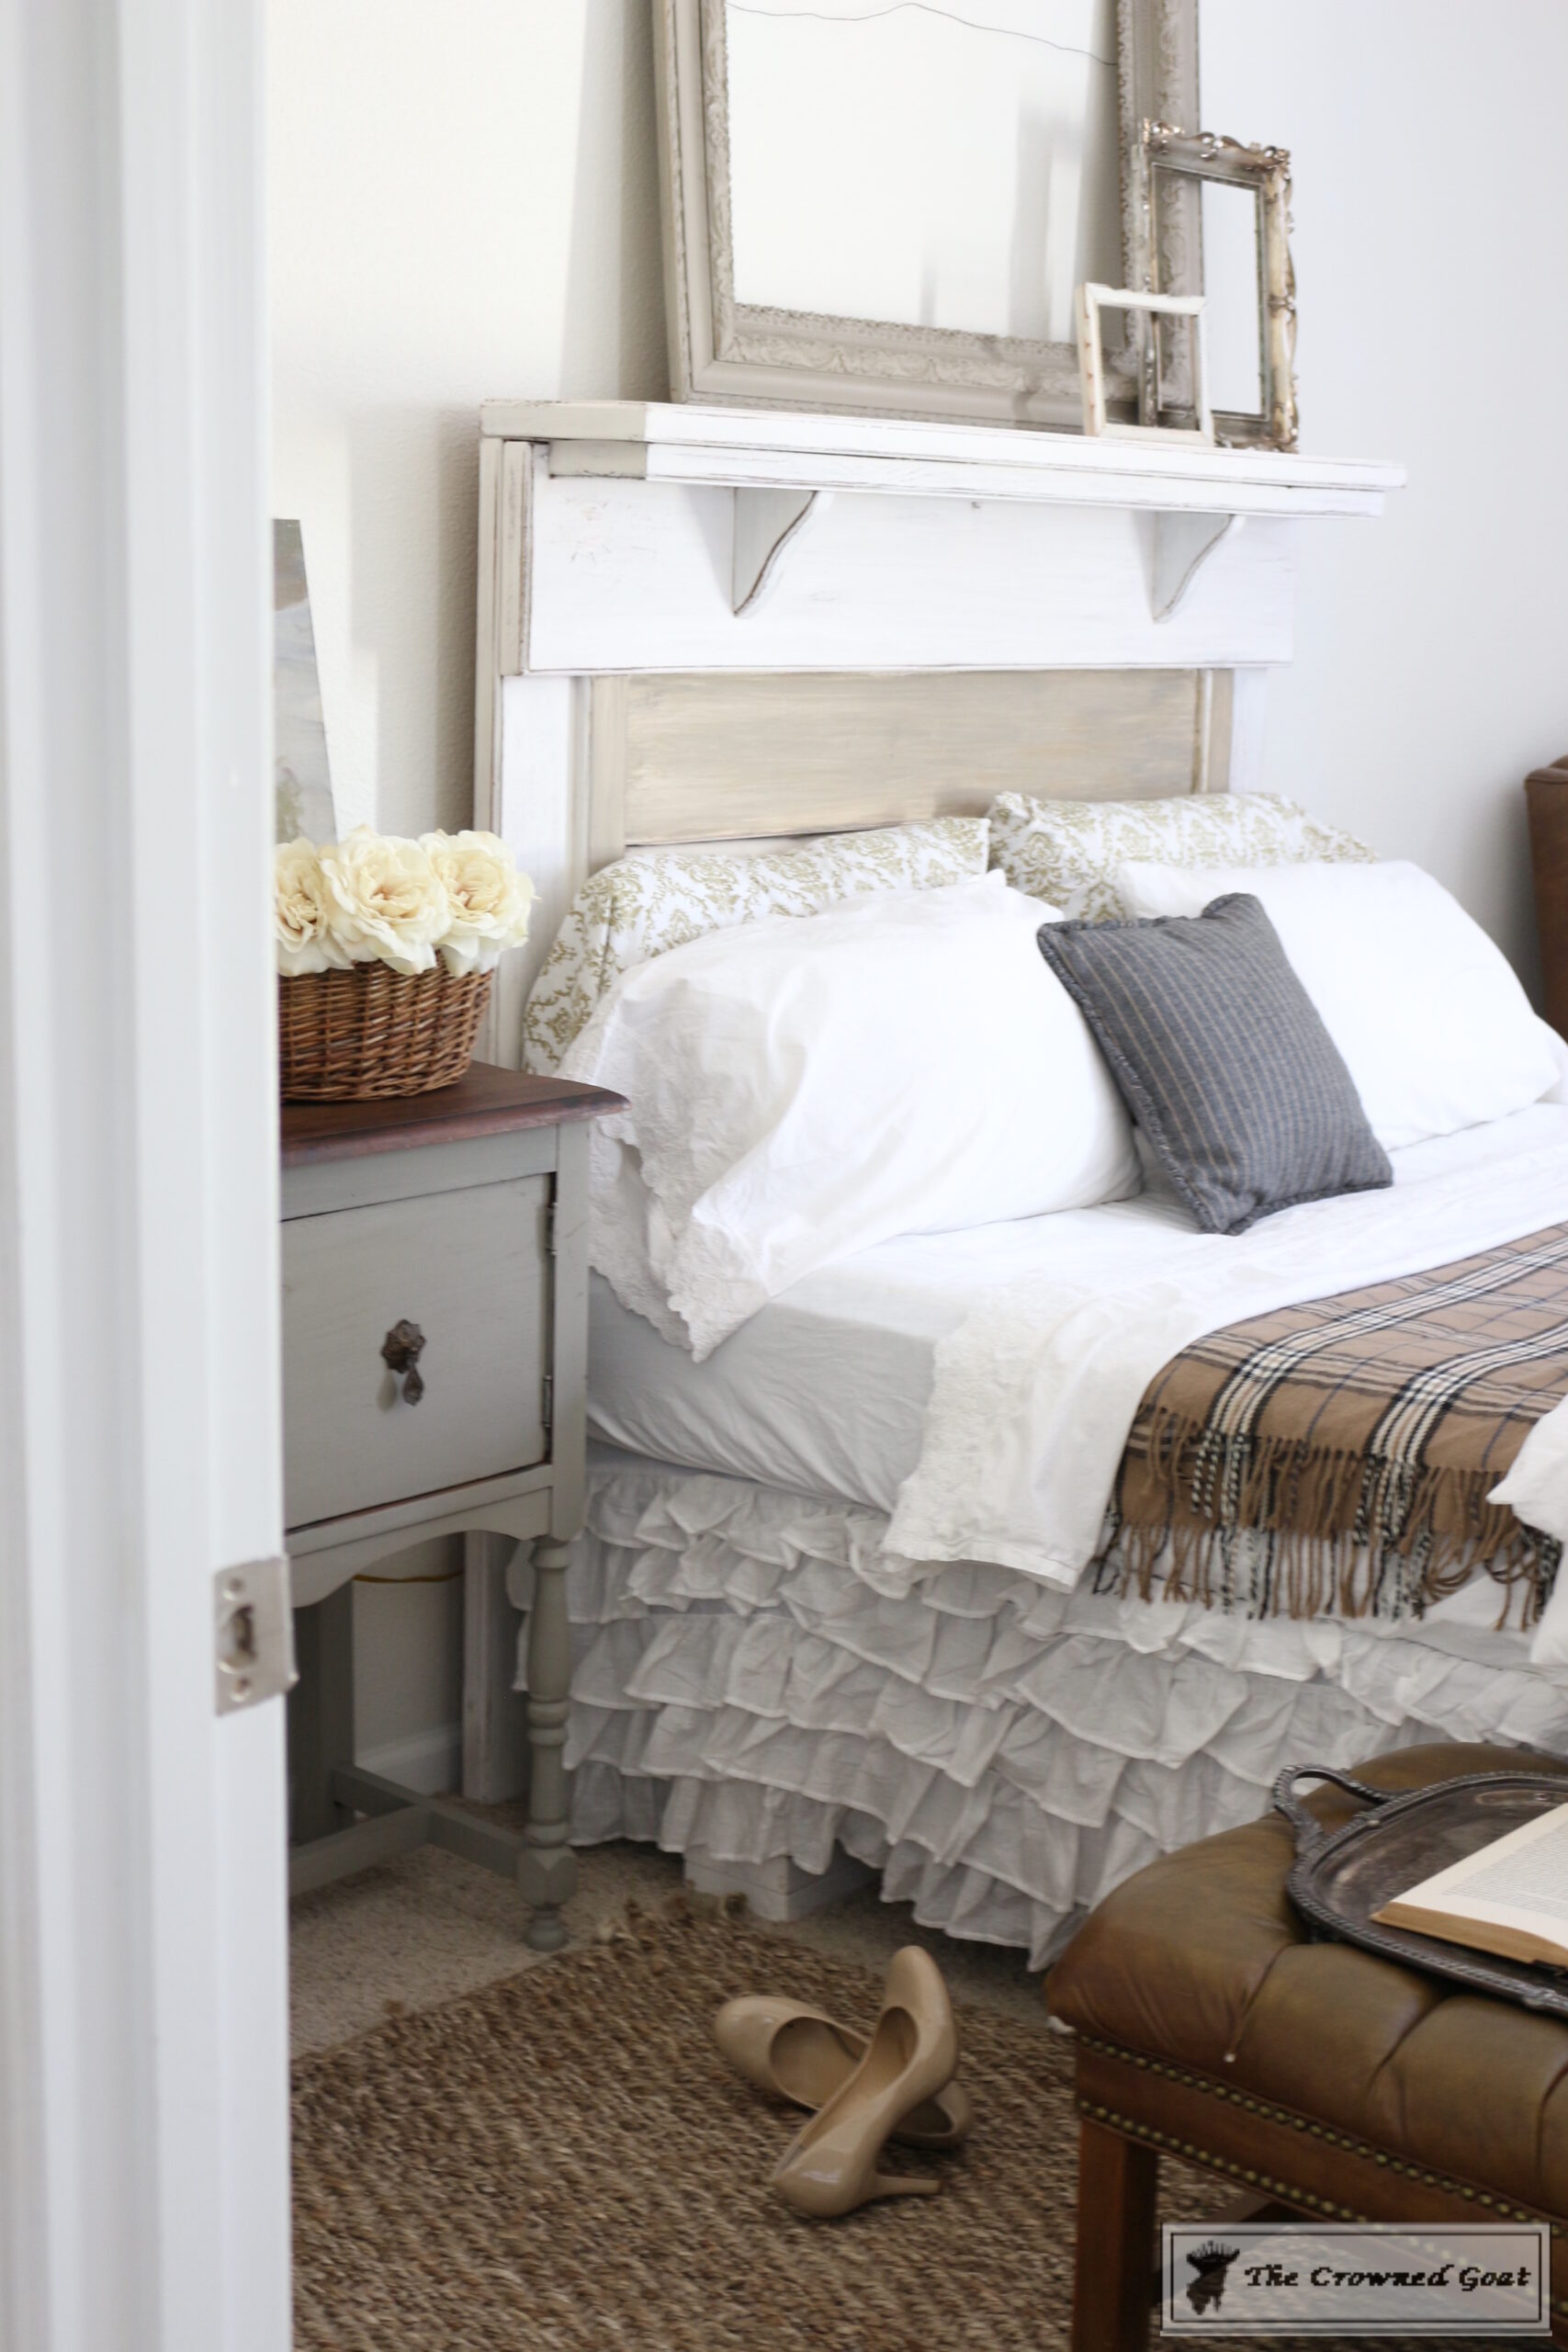 Bedroom Decorating: Small Changes that Make a Big Impact